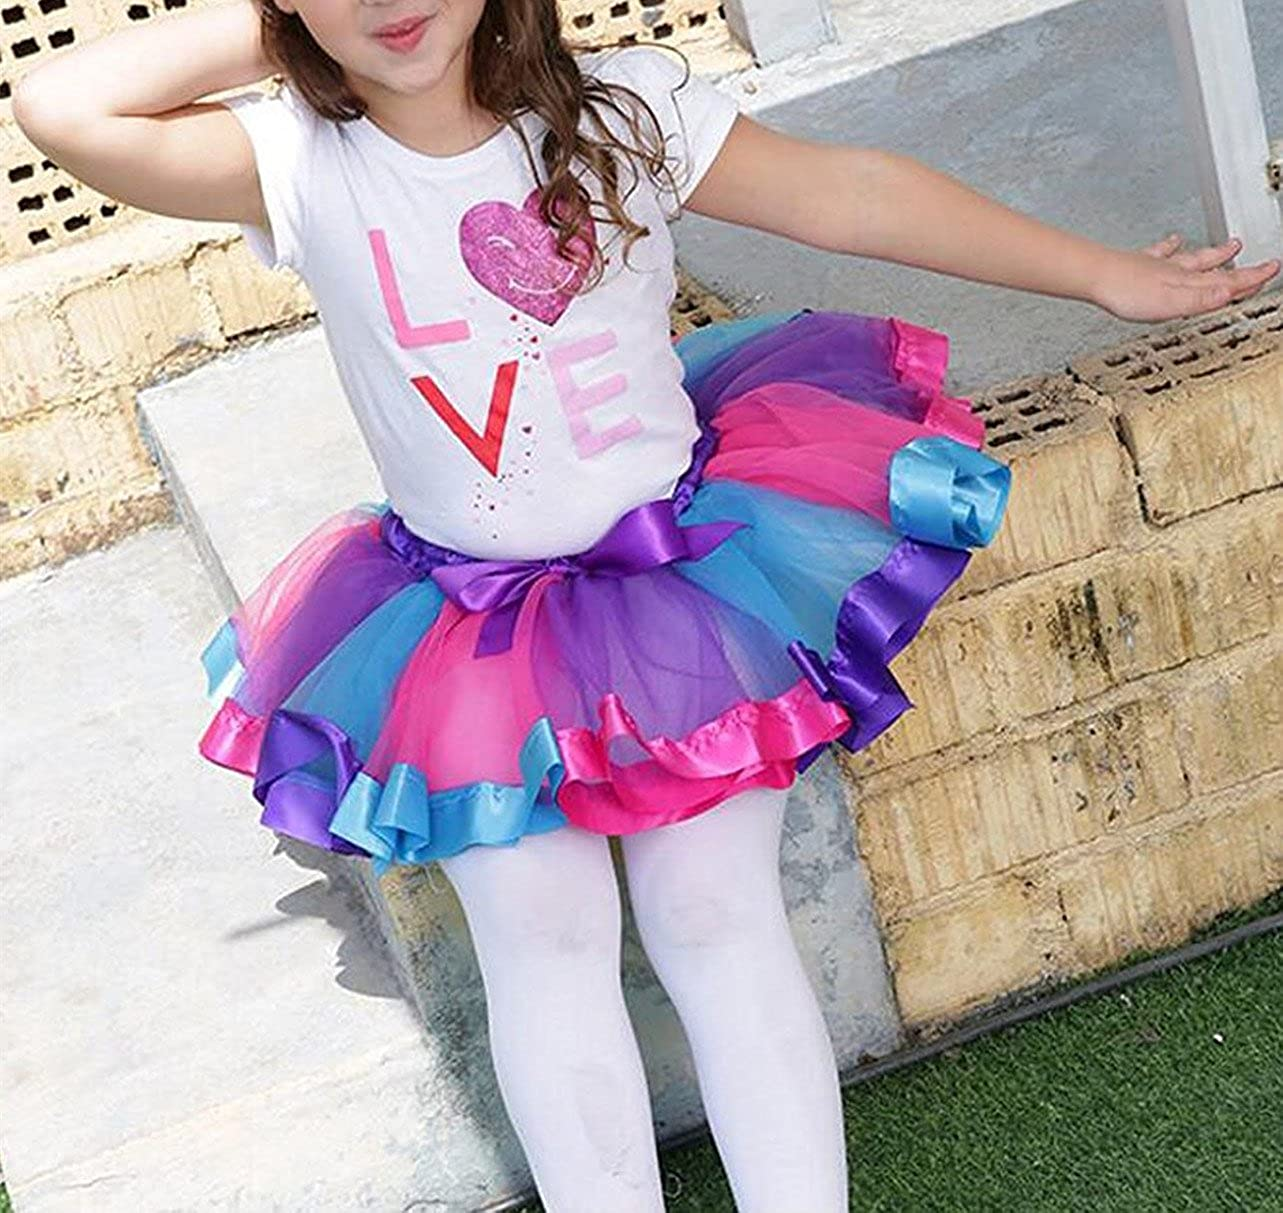 SUNTRADE Girls Layered Colorful Tutu Skirt for Birthday Party Dress Up